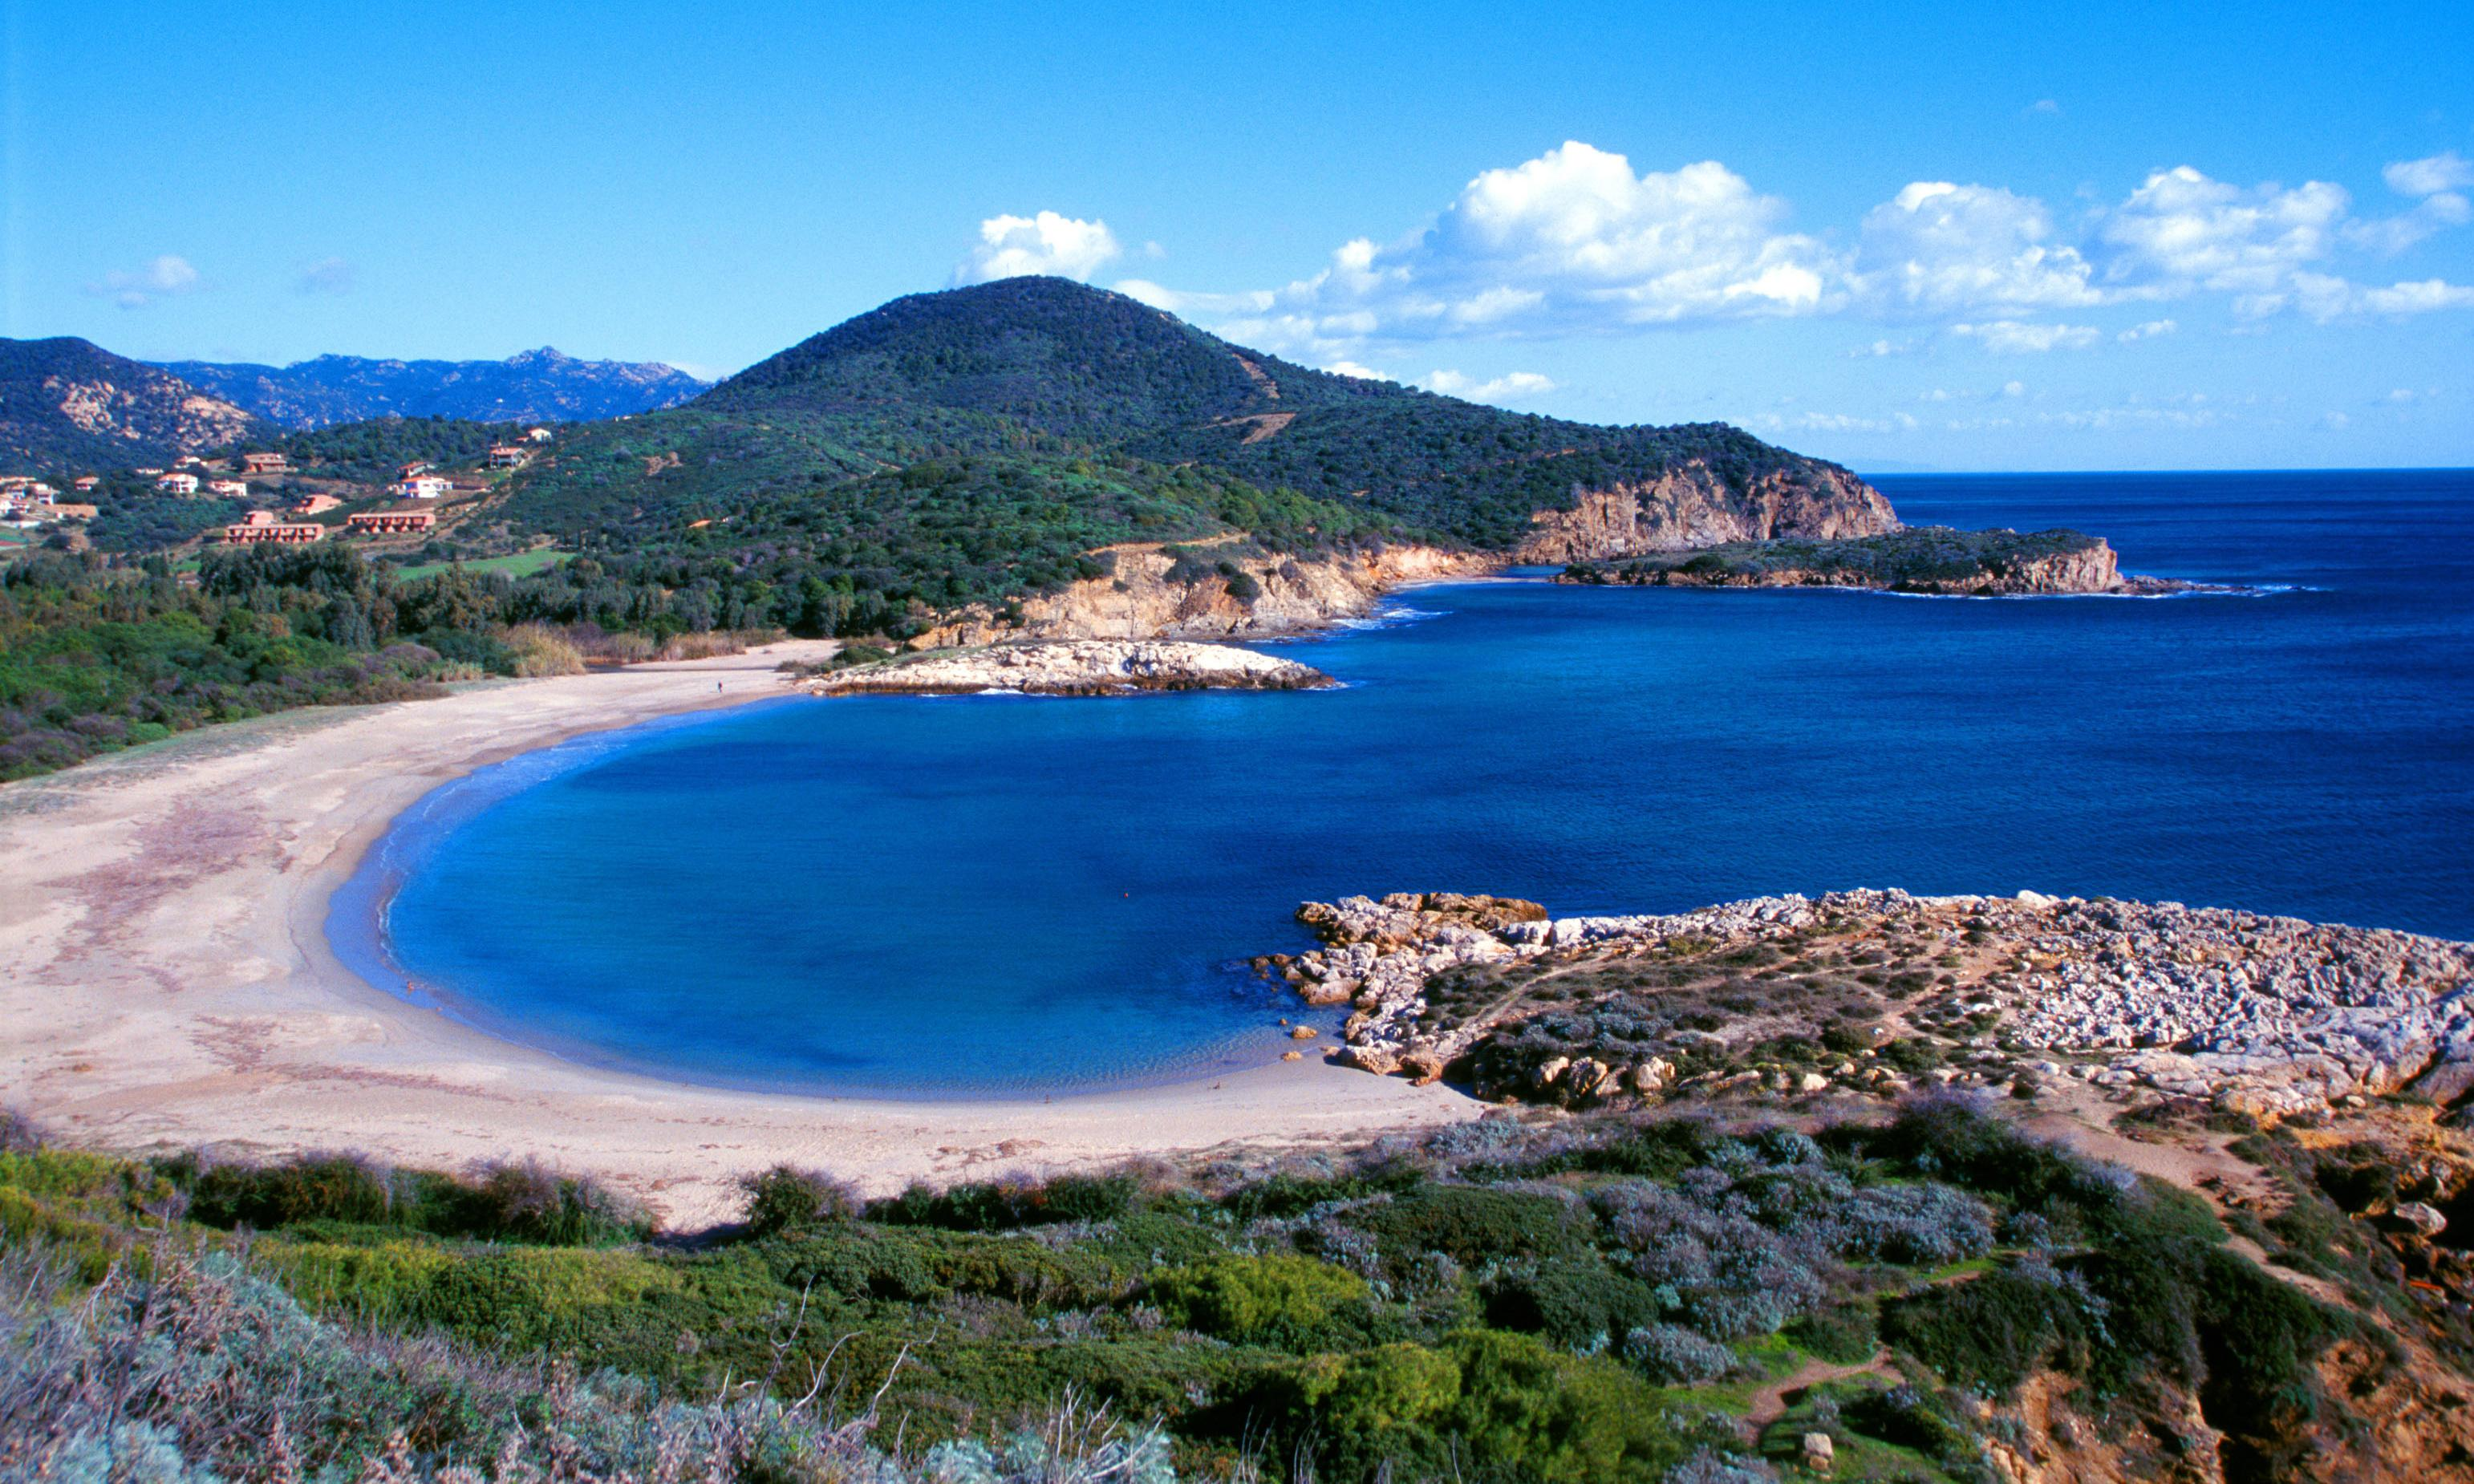 French tourists face six years in jail over claims they stole Sardinia sand